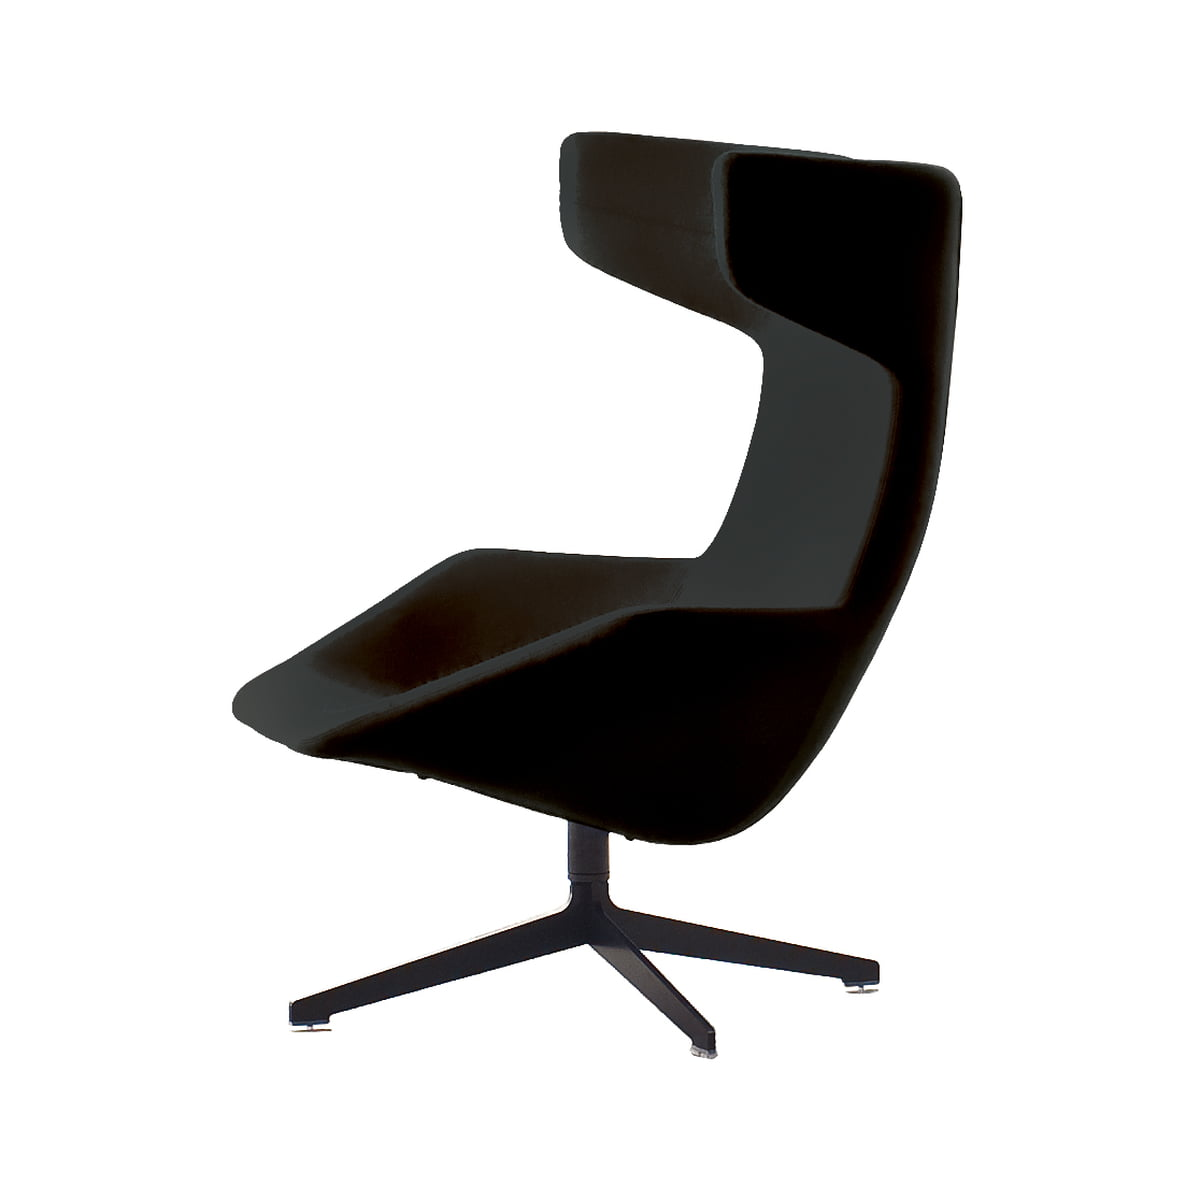 Drehsessel Rot Drehsessel Finger Chair Great Drehsessel With Drehsessel Finger